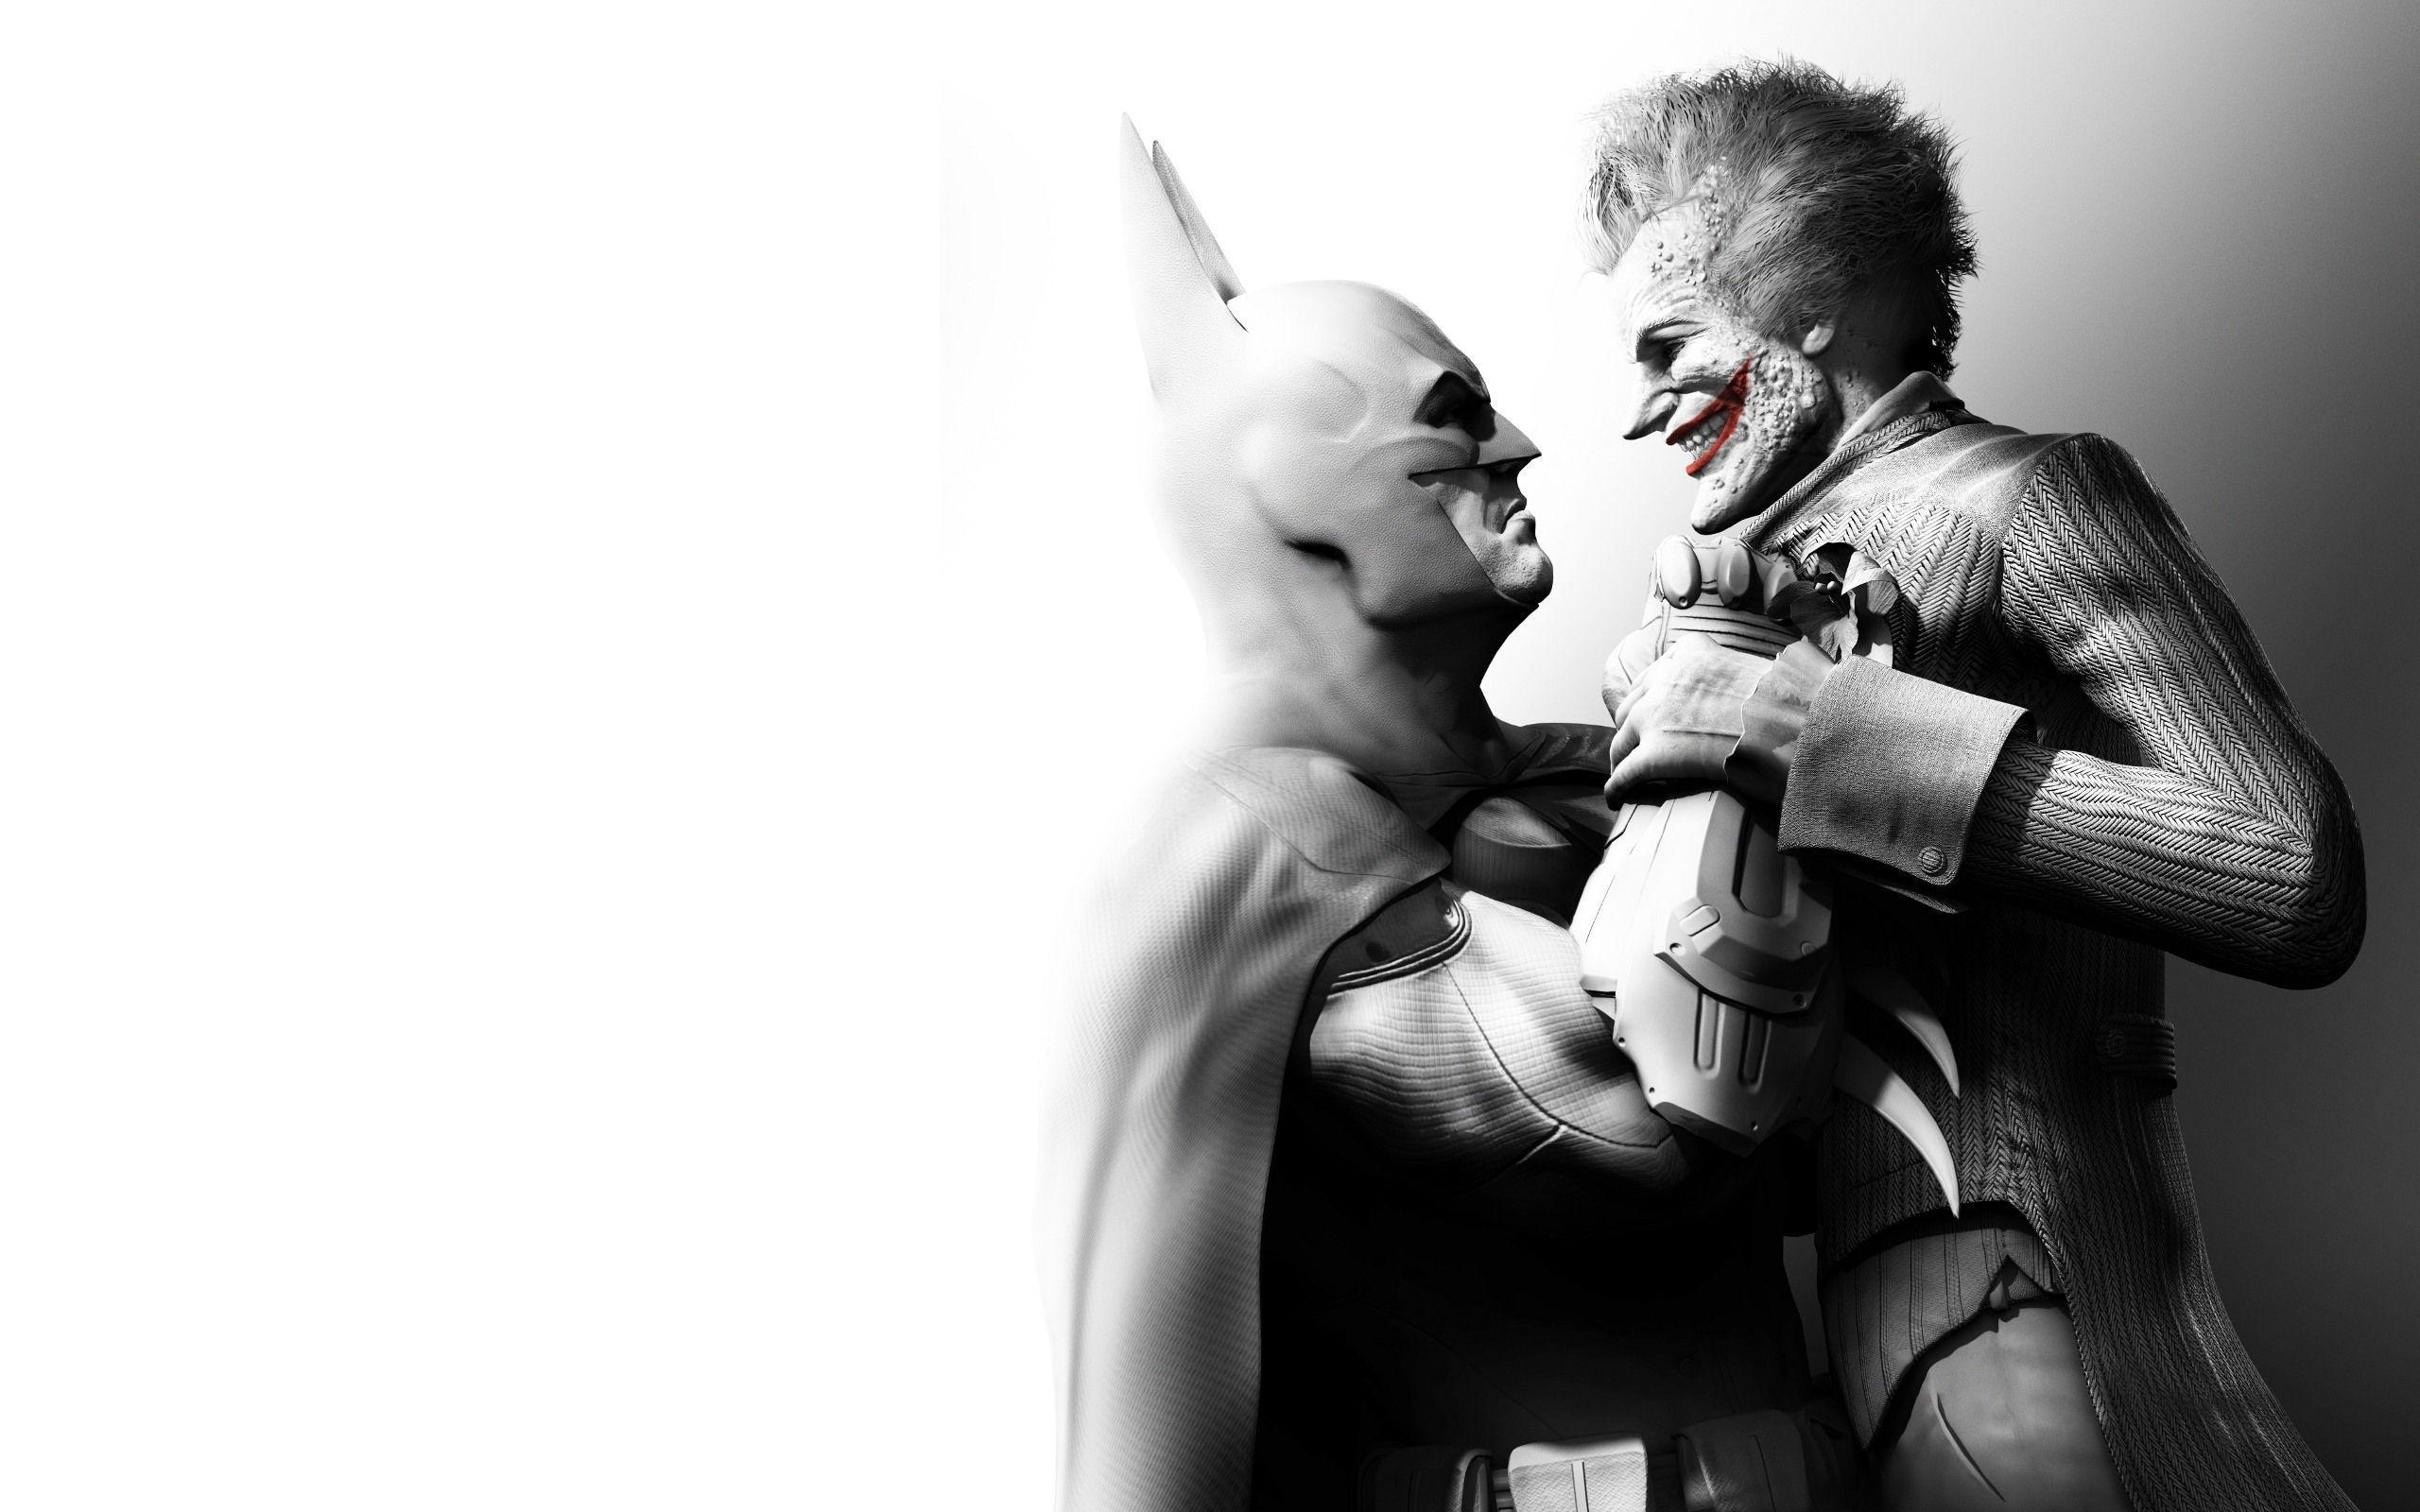 Batman And Joker Wallpapers 2560x1600